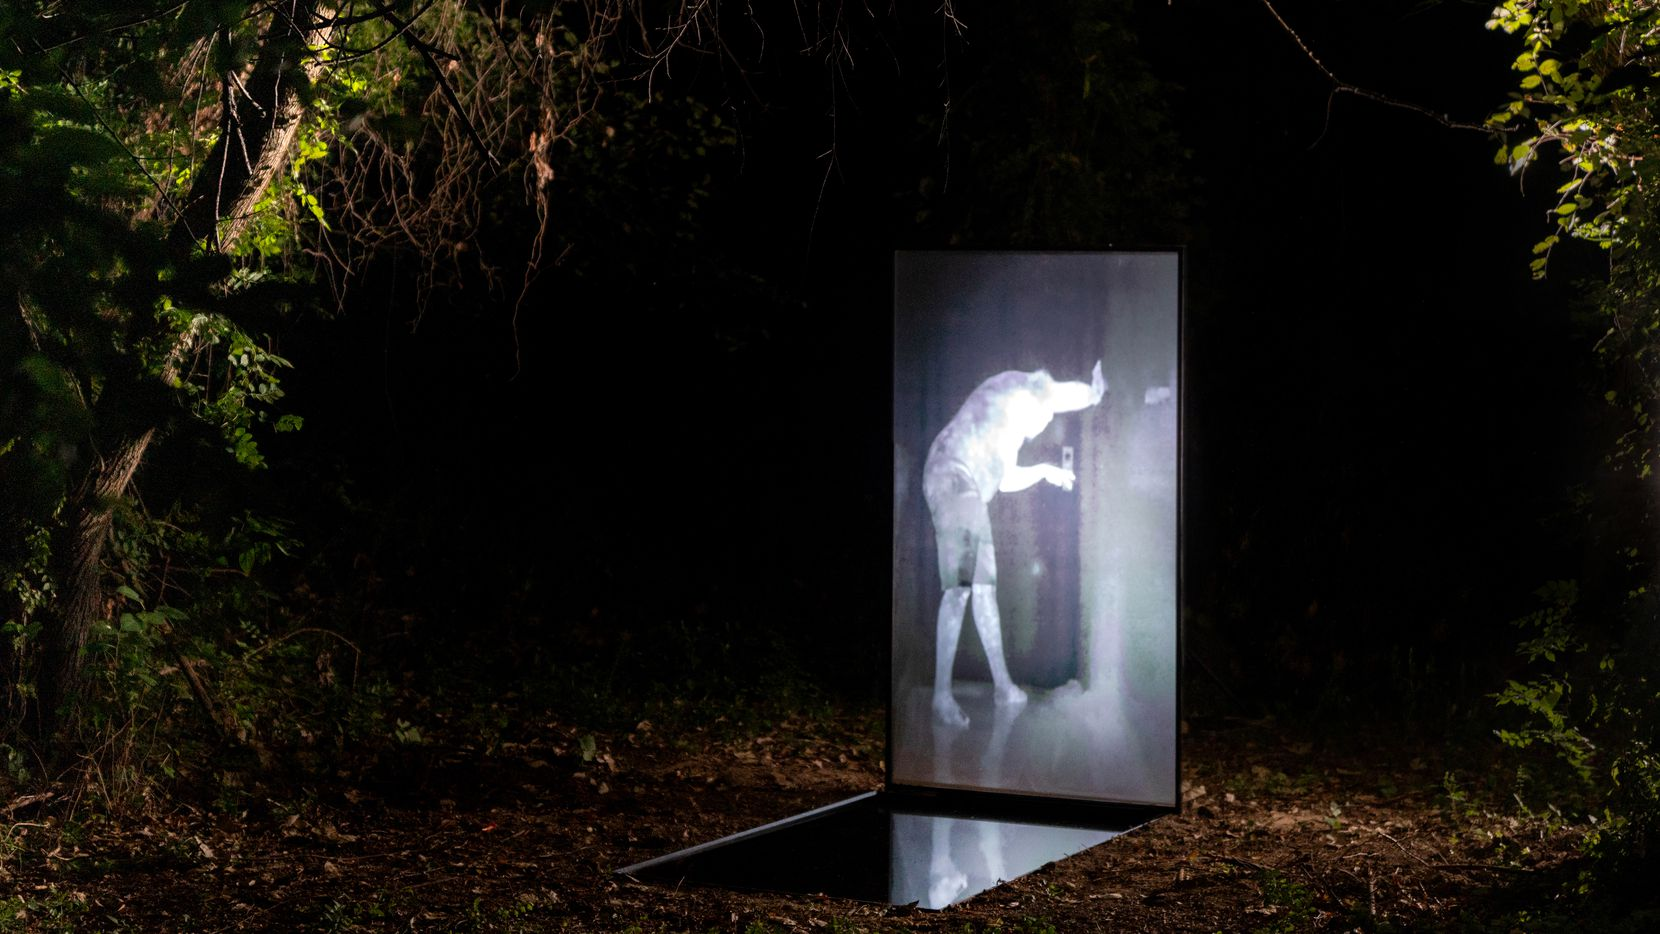 On view through Oct. 17 at the outdoor gallery Sweet Pass Sculpture Park, 'Breath Ascent Reveal' is a haunting nighttime installation.